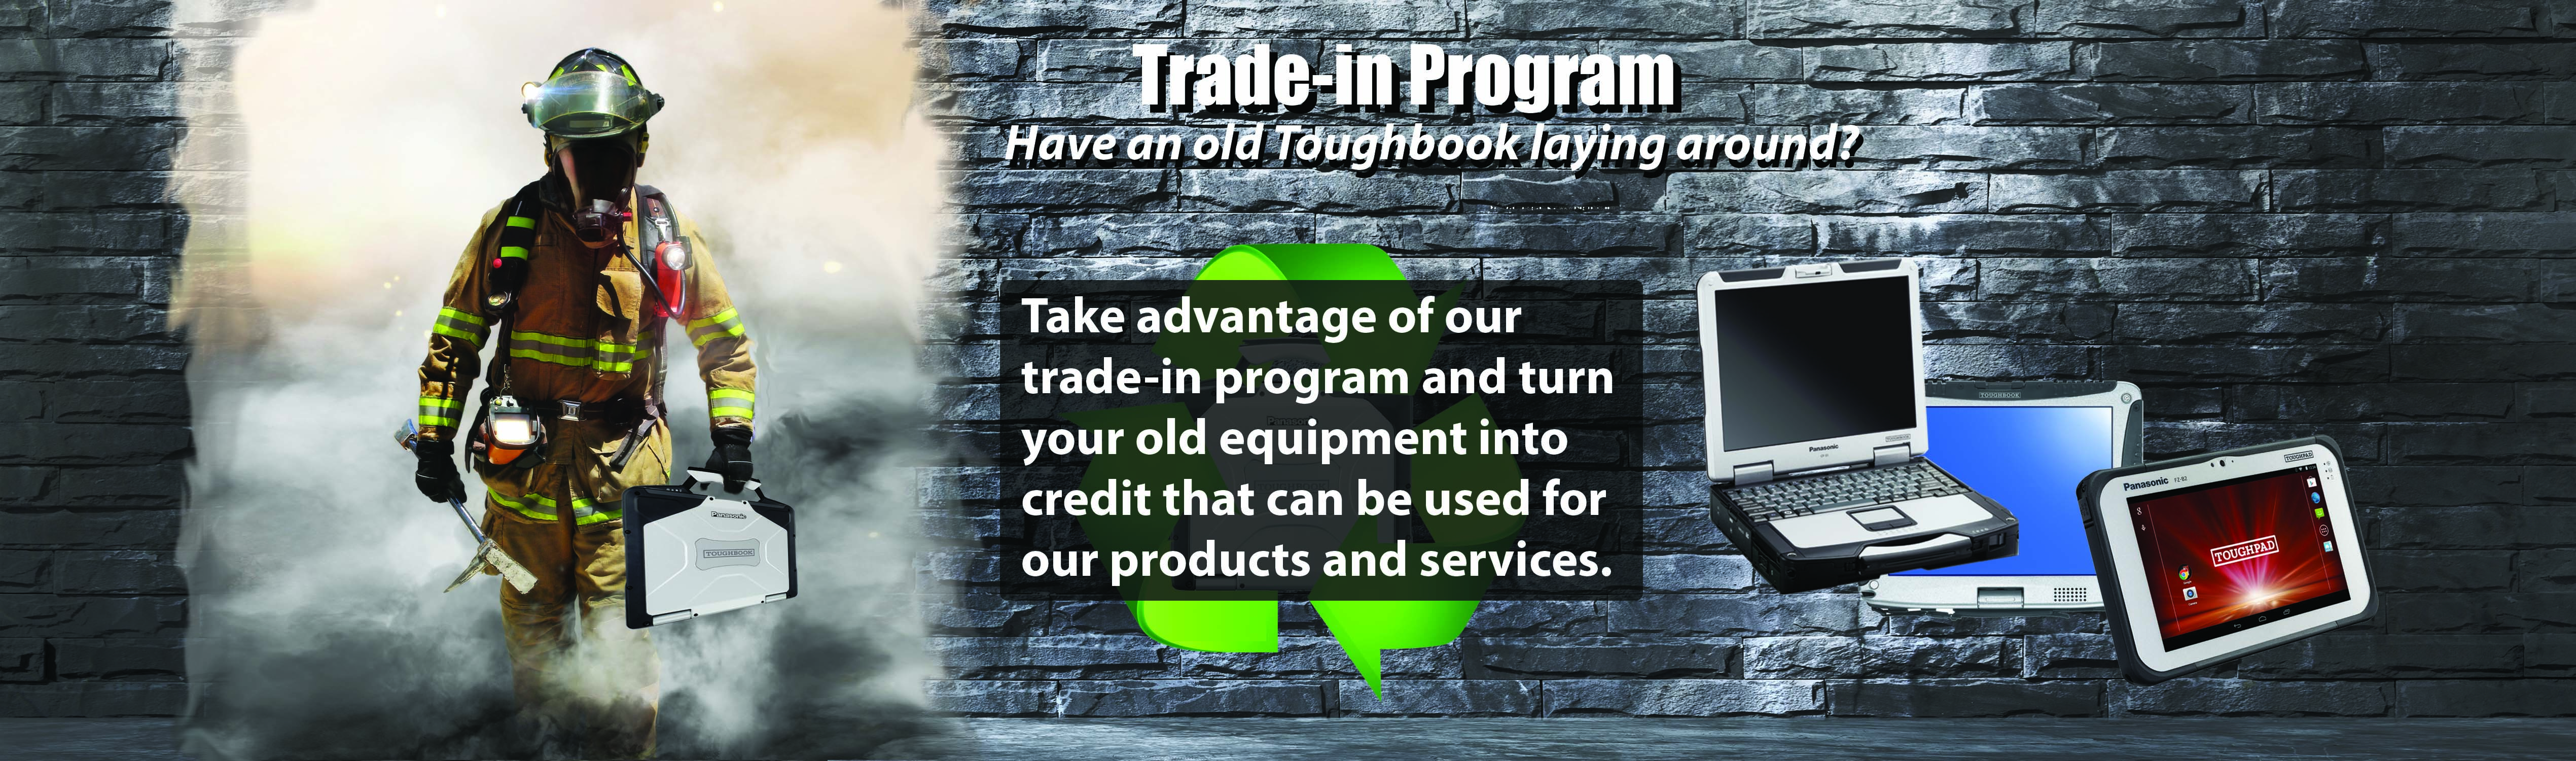 Take advantage of our trade-in program and turn your old Toughbooks into credit that can be used for our products and services.